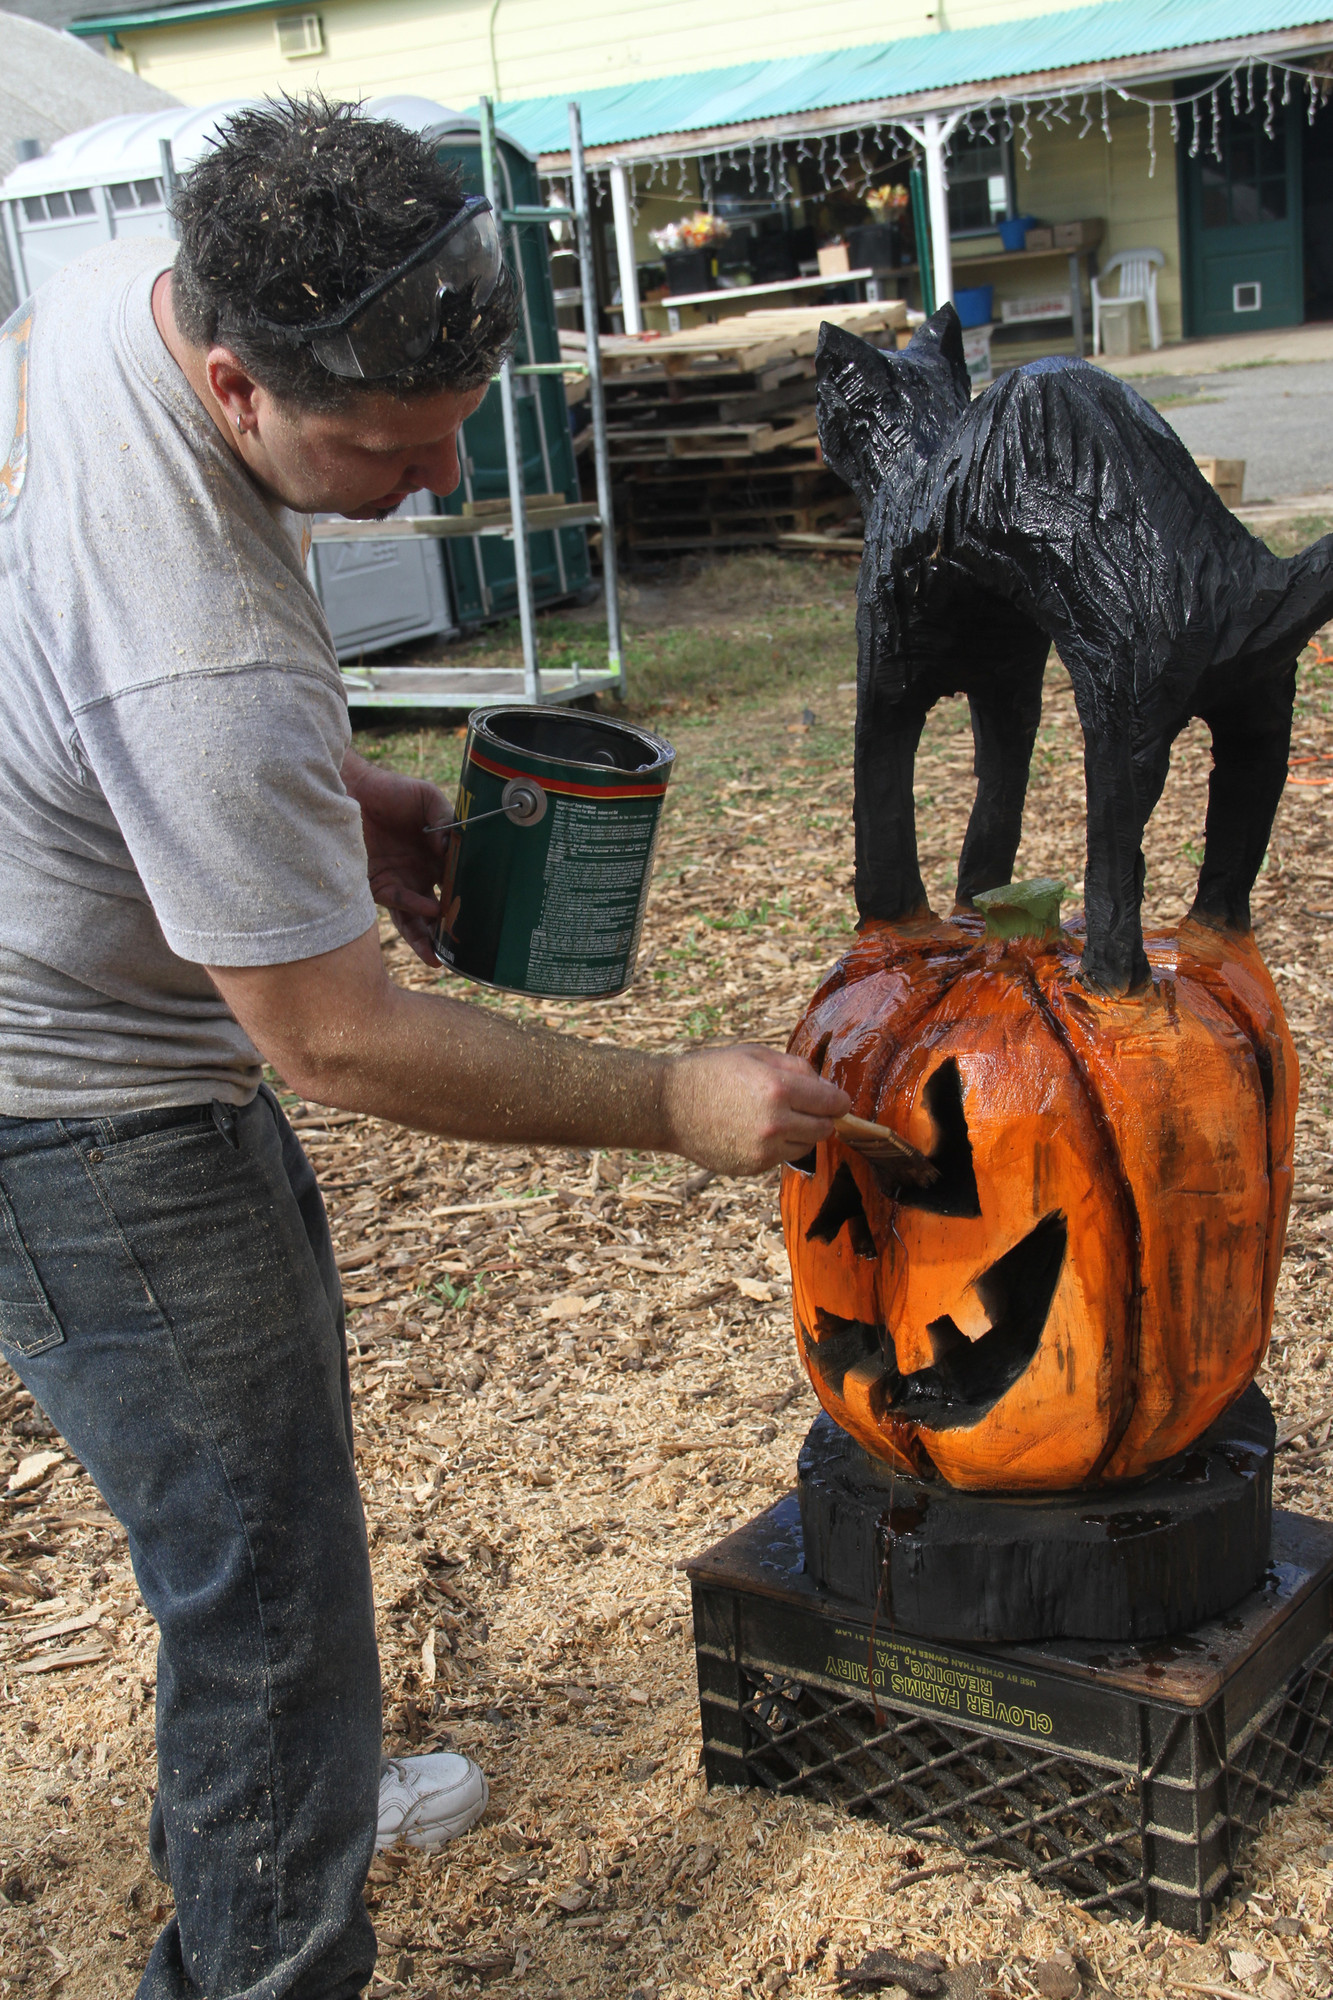 Artist Craig Mastandrea of Wood Cut Designs put the finishing touches on his spooky wood sculpture at the event.